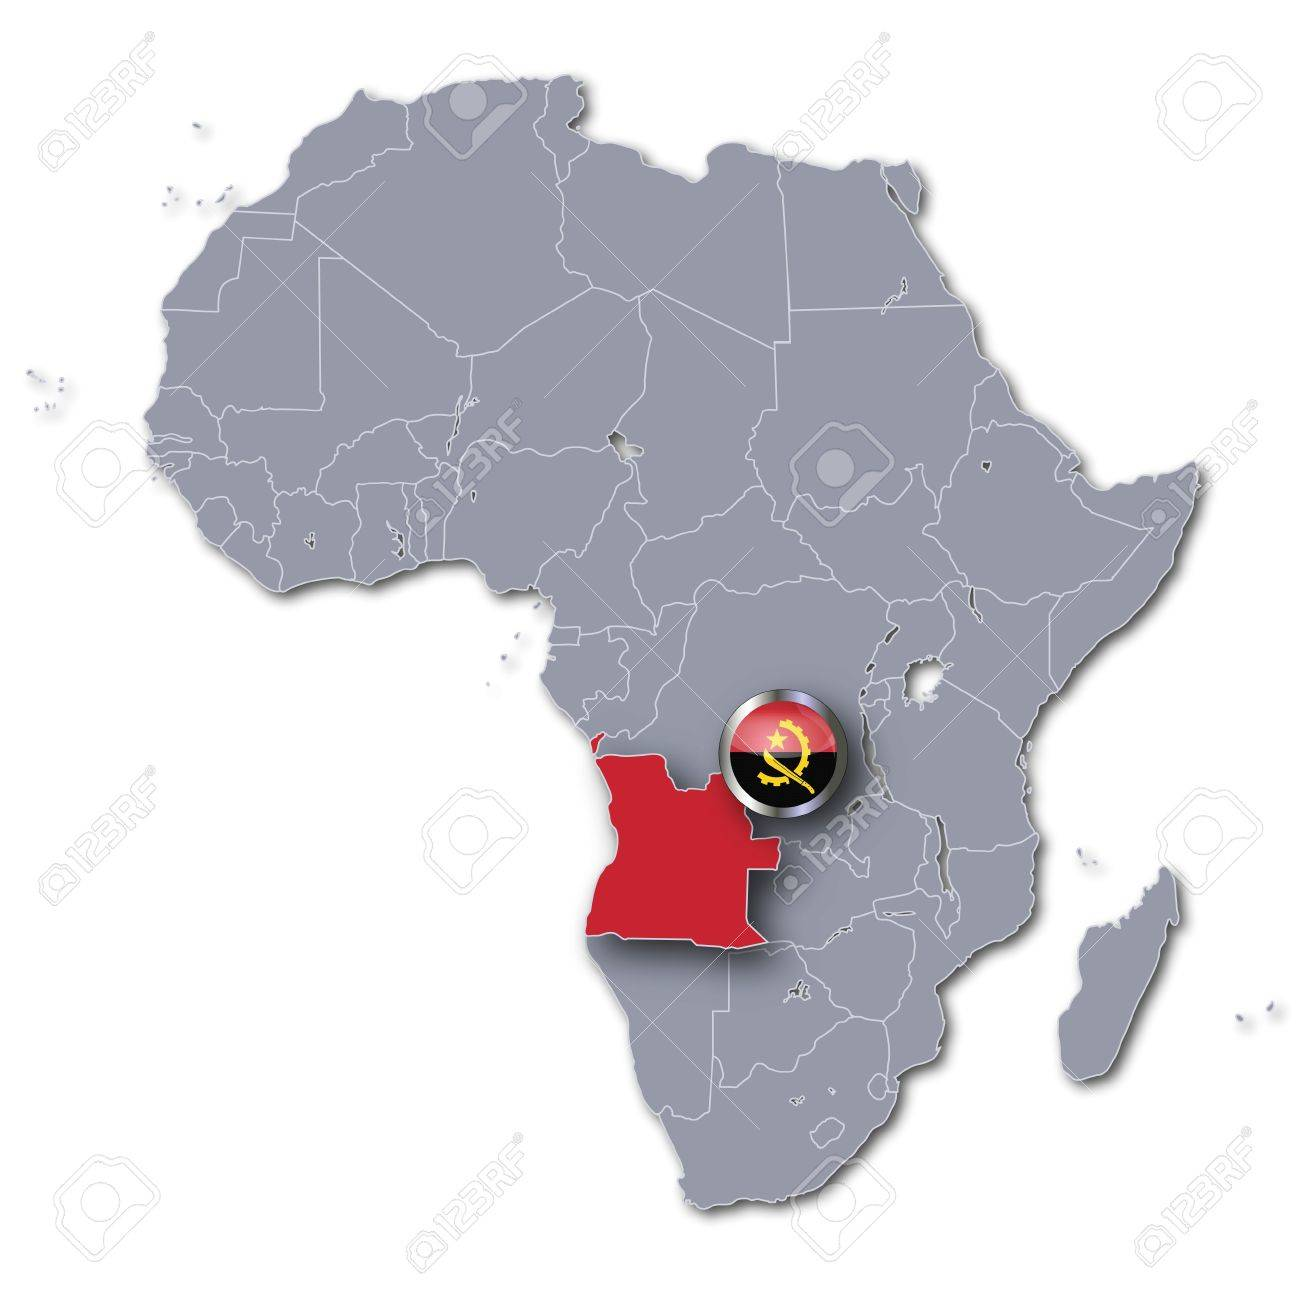 Africa Map Angola.Africa Map Angola Stock Photo Picture And Royalty Free Image Image